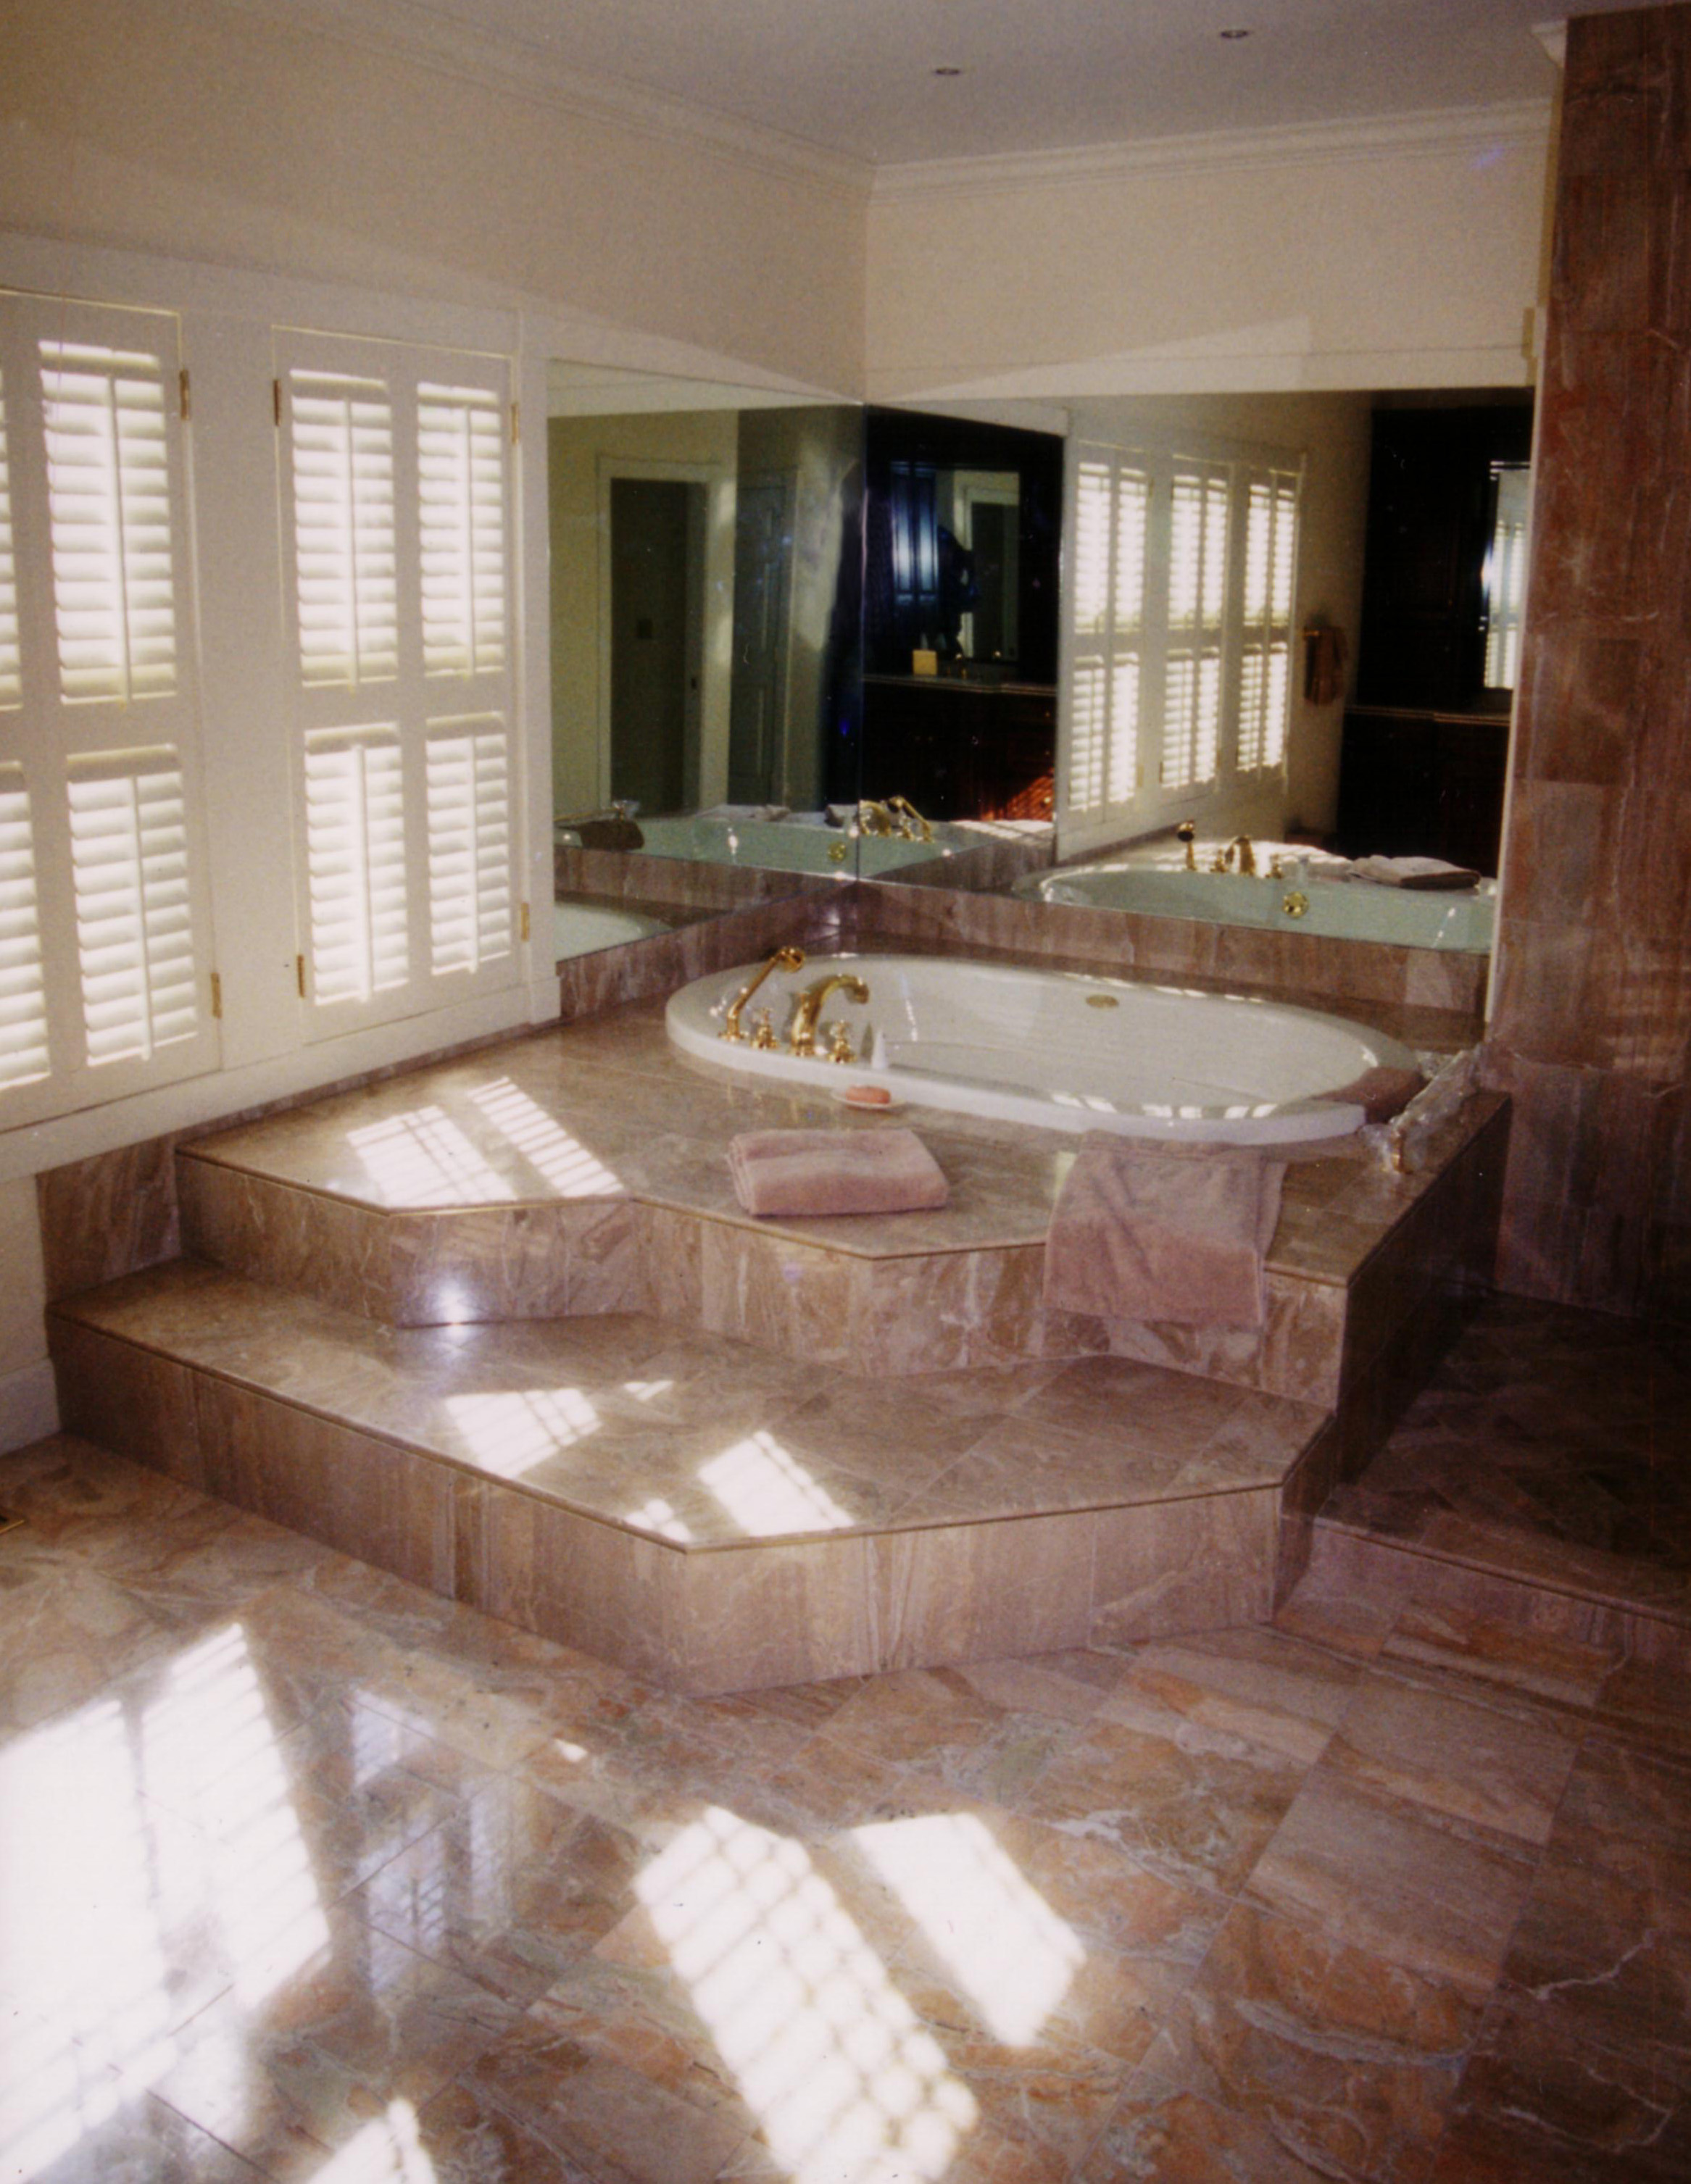 Private Residence (new construction - interior)